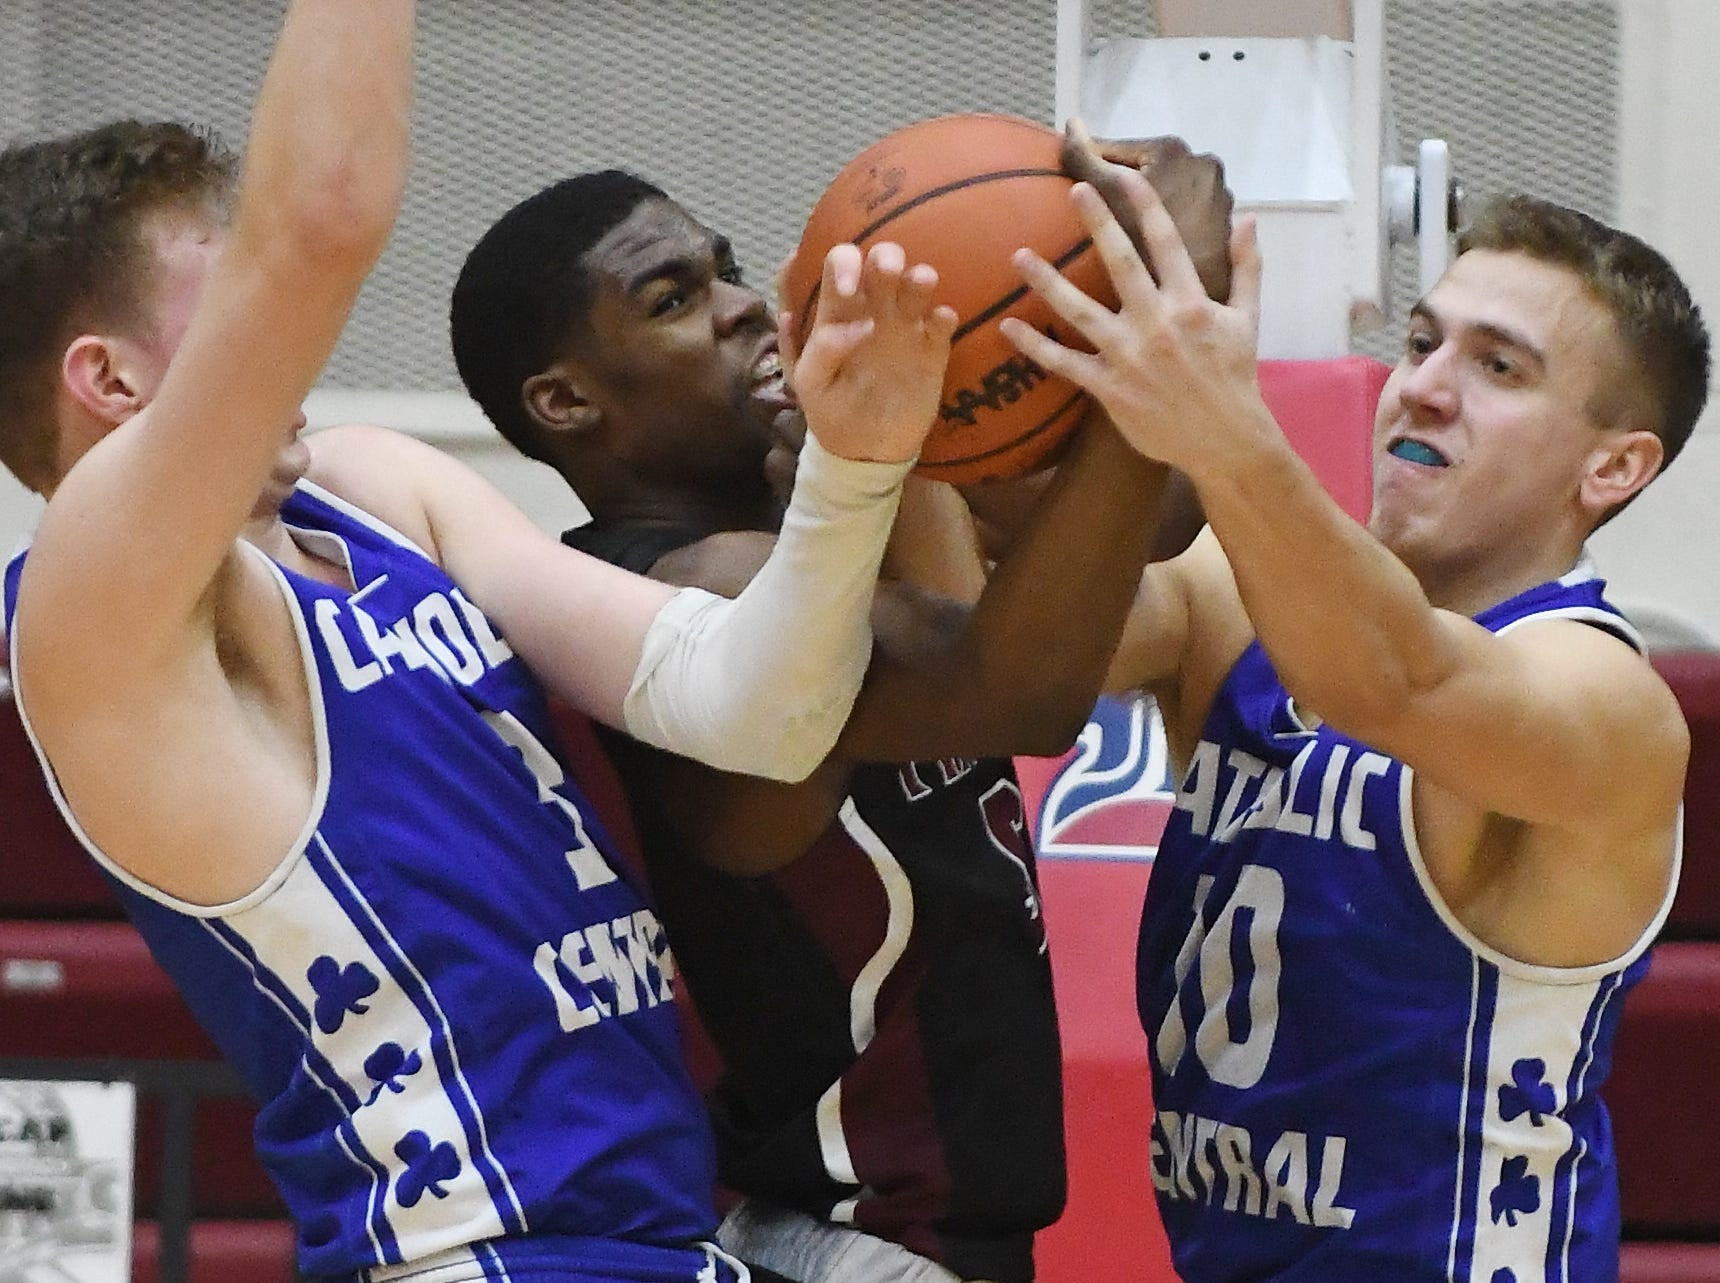 Renaissance's Kaylein Marzetter, center, fights for a rebound against Catholic Central's Davis Lukomski and Mike Harding under the basket in the first half of the consolation game.